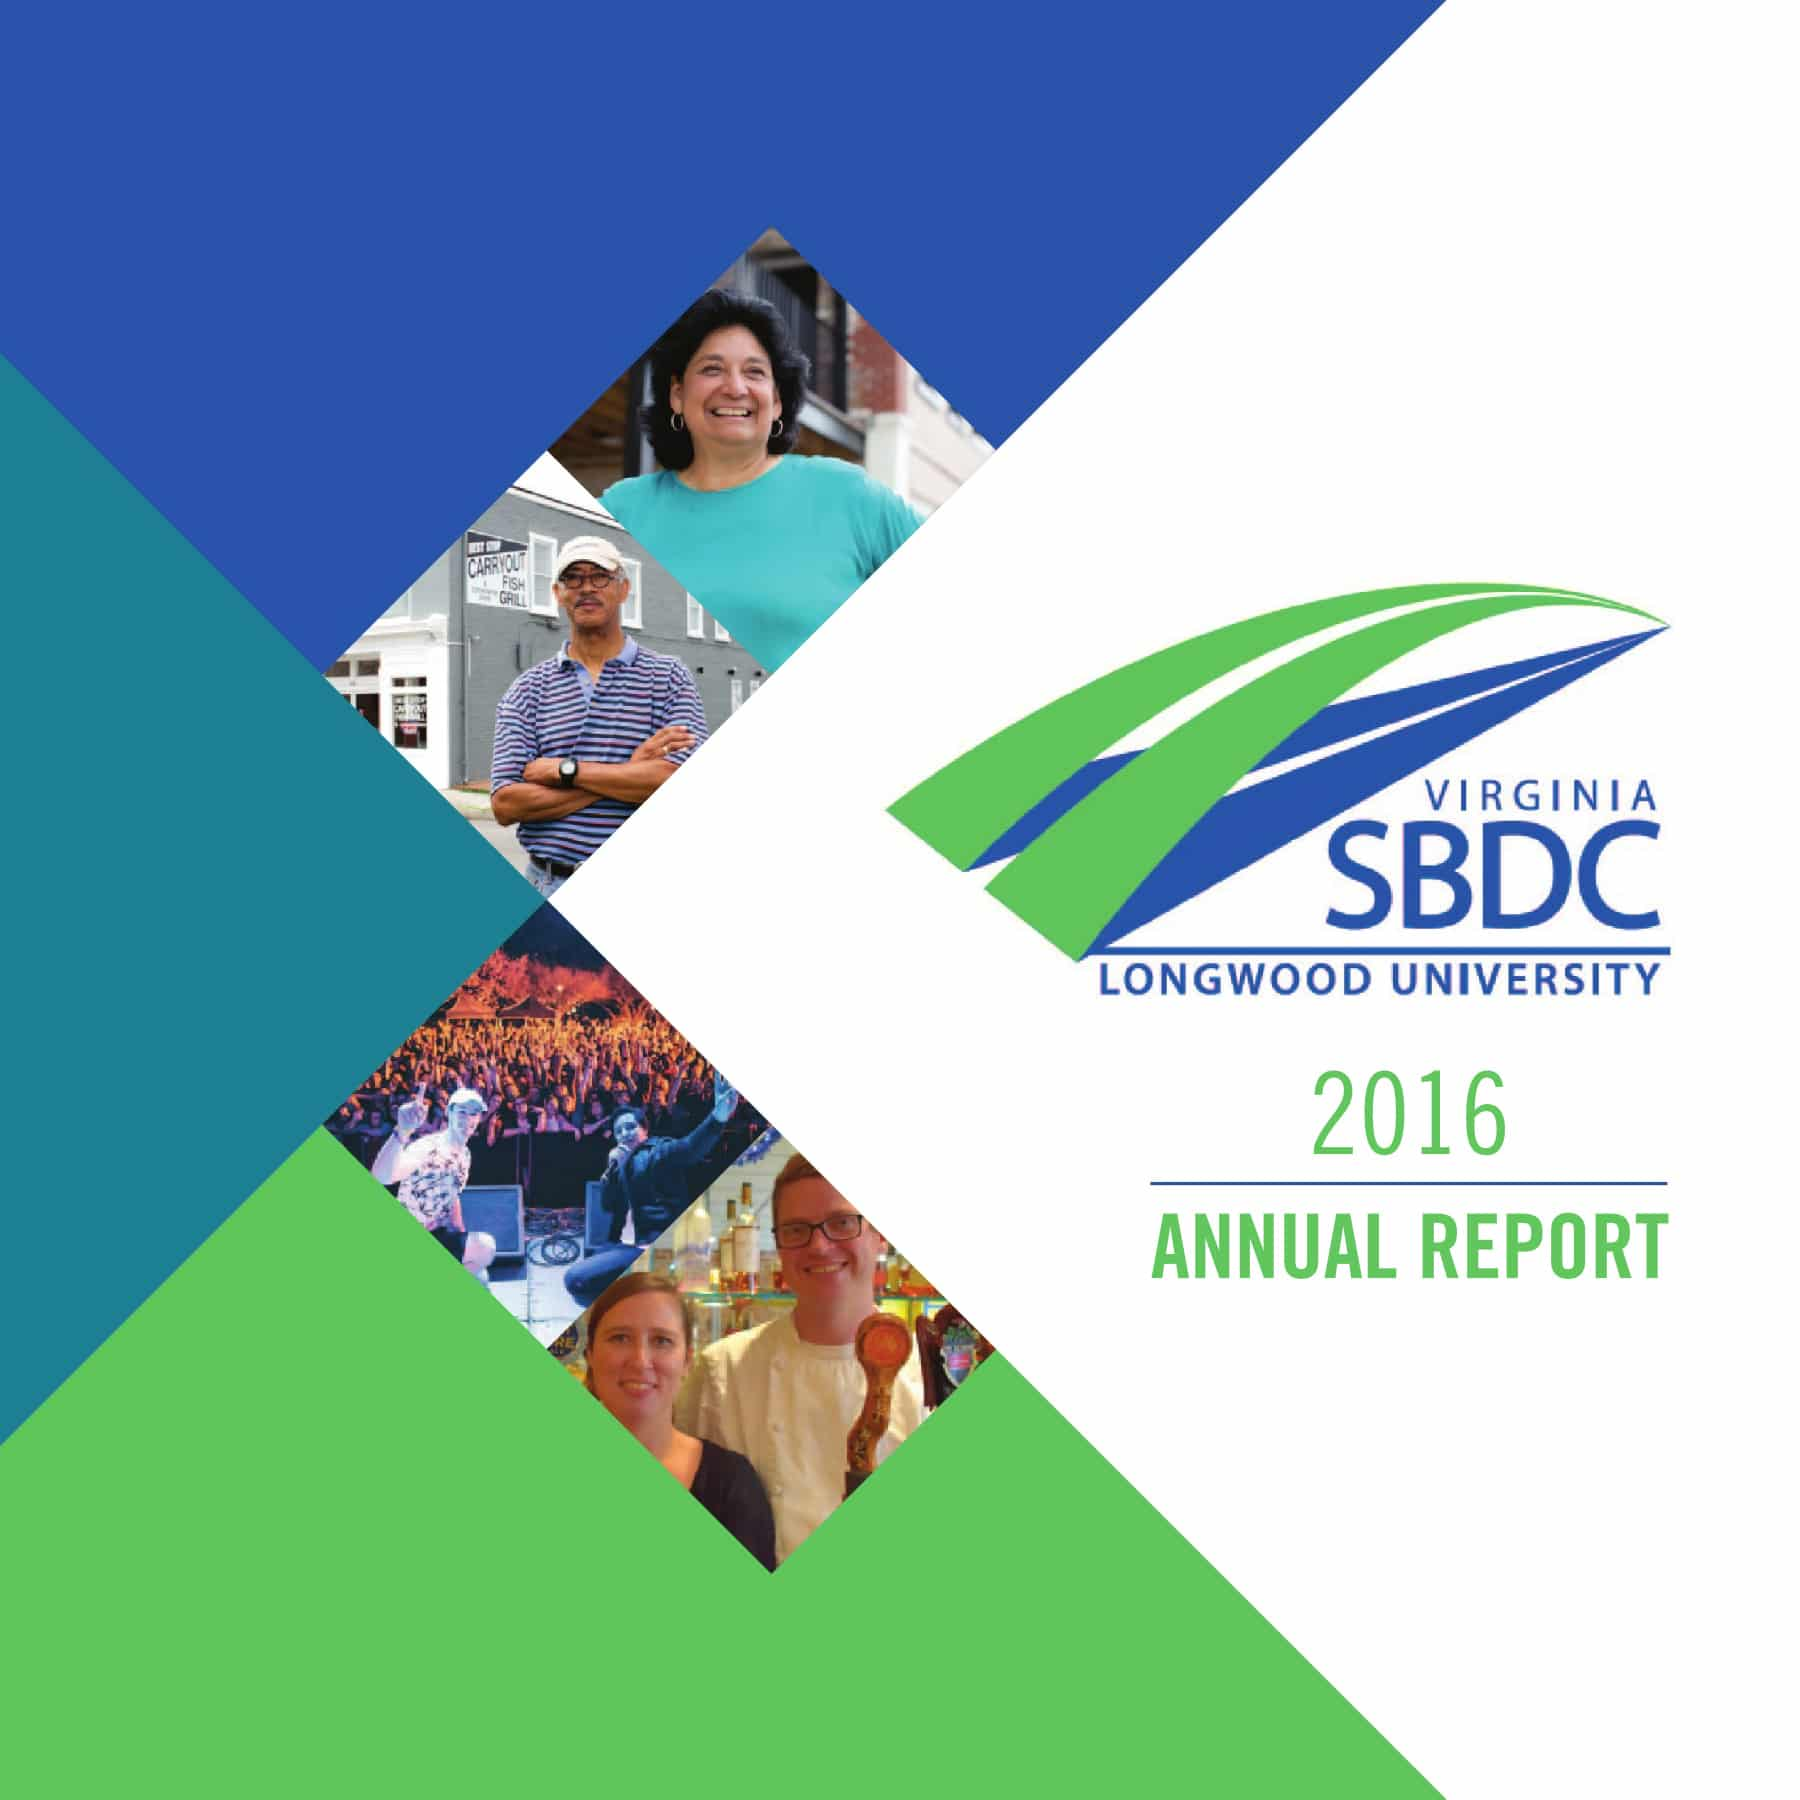 SBDC 2016 Annual Report cover